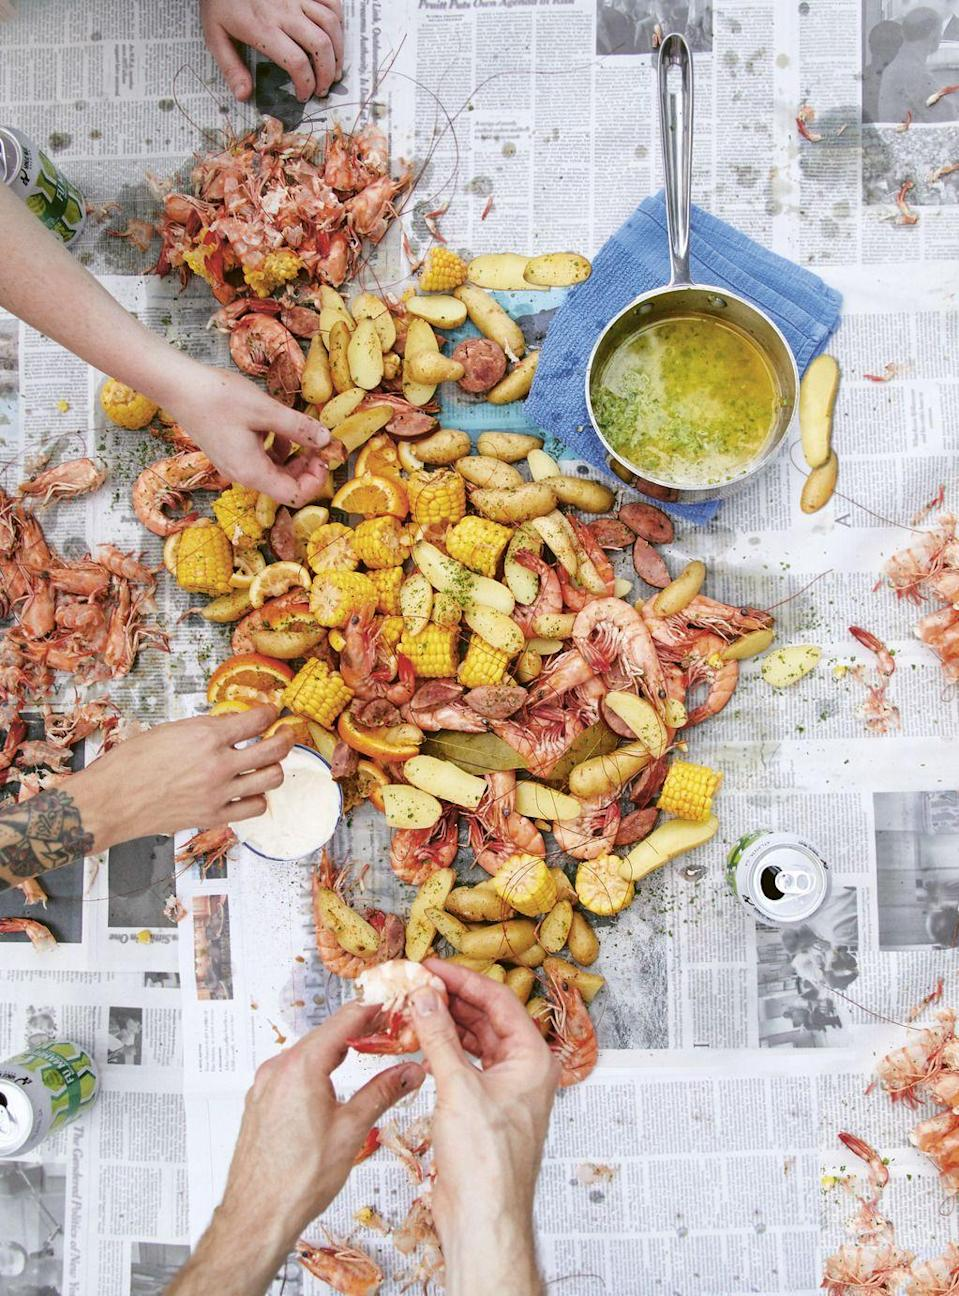 """<p>Want to feast dad in casual style? Make him this classic Louisiana-style outdoor feast. </p><p><strong><a href=""""https://www.countryliving.com/food-drinks/a35865367/low-country-shrimp-boil-recipe/"""" rel=""""nofollow noopener"""" target=""""_blank"""" data-ylk=""""slk:Get the recipe"""" class=""""link rapid-noclick-resp"""">Get the recipe</a>.</strong></p>"""